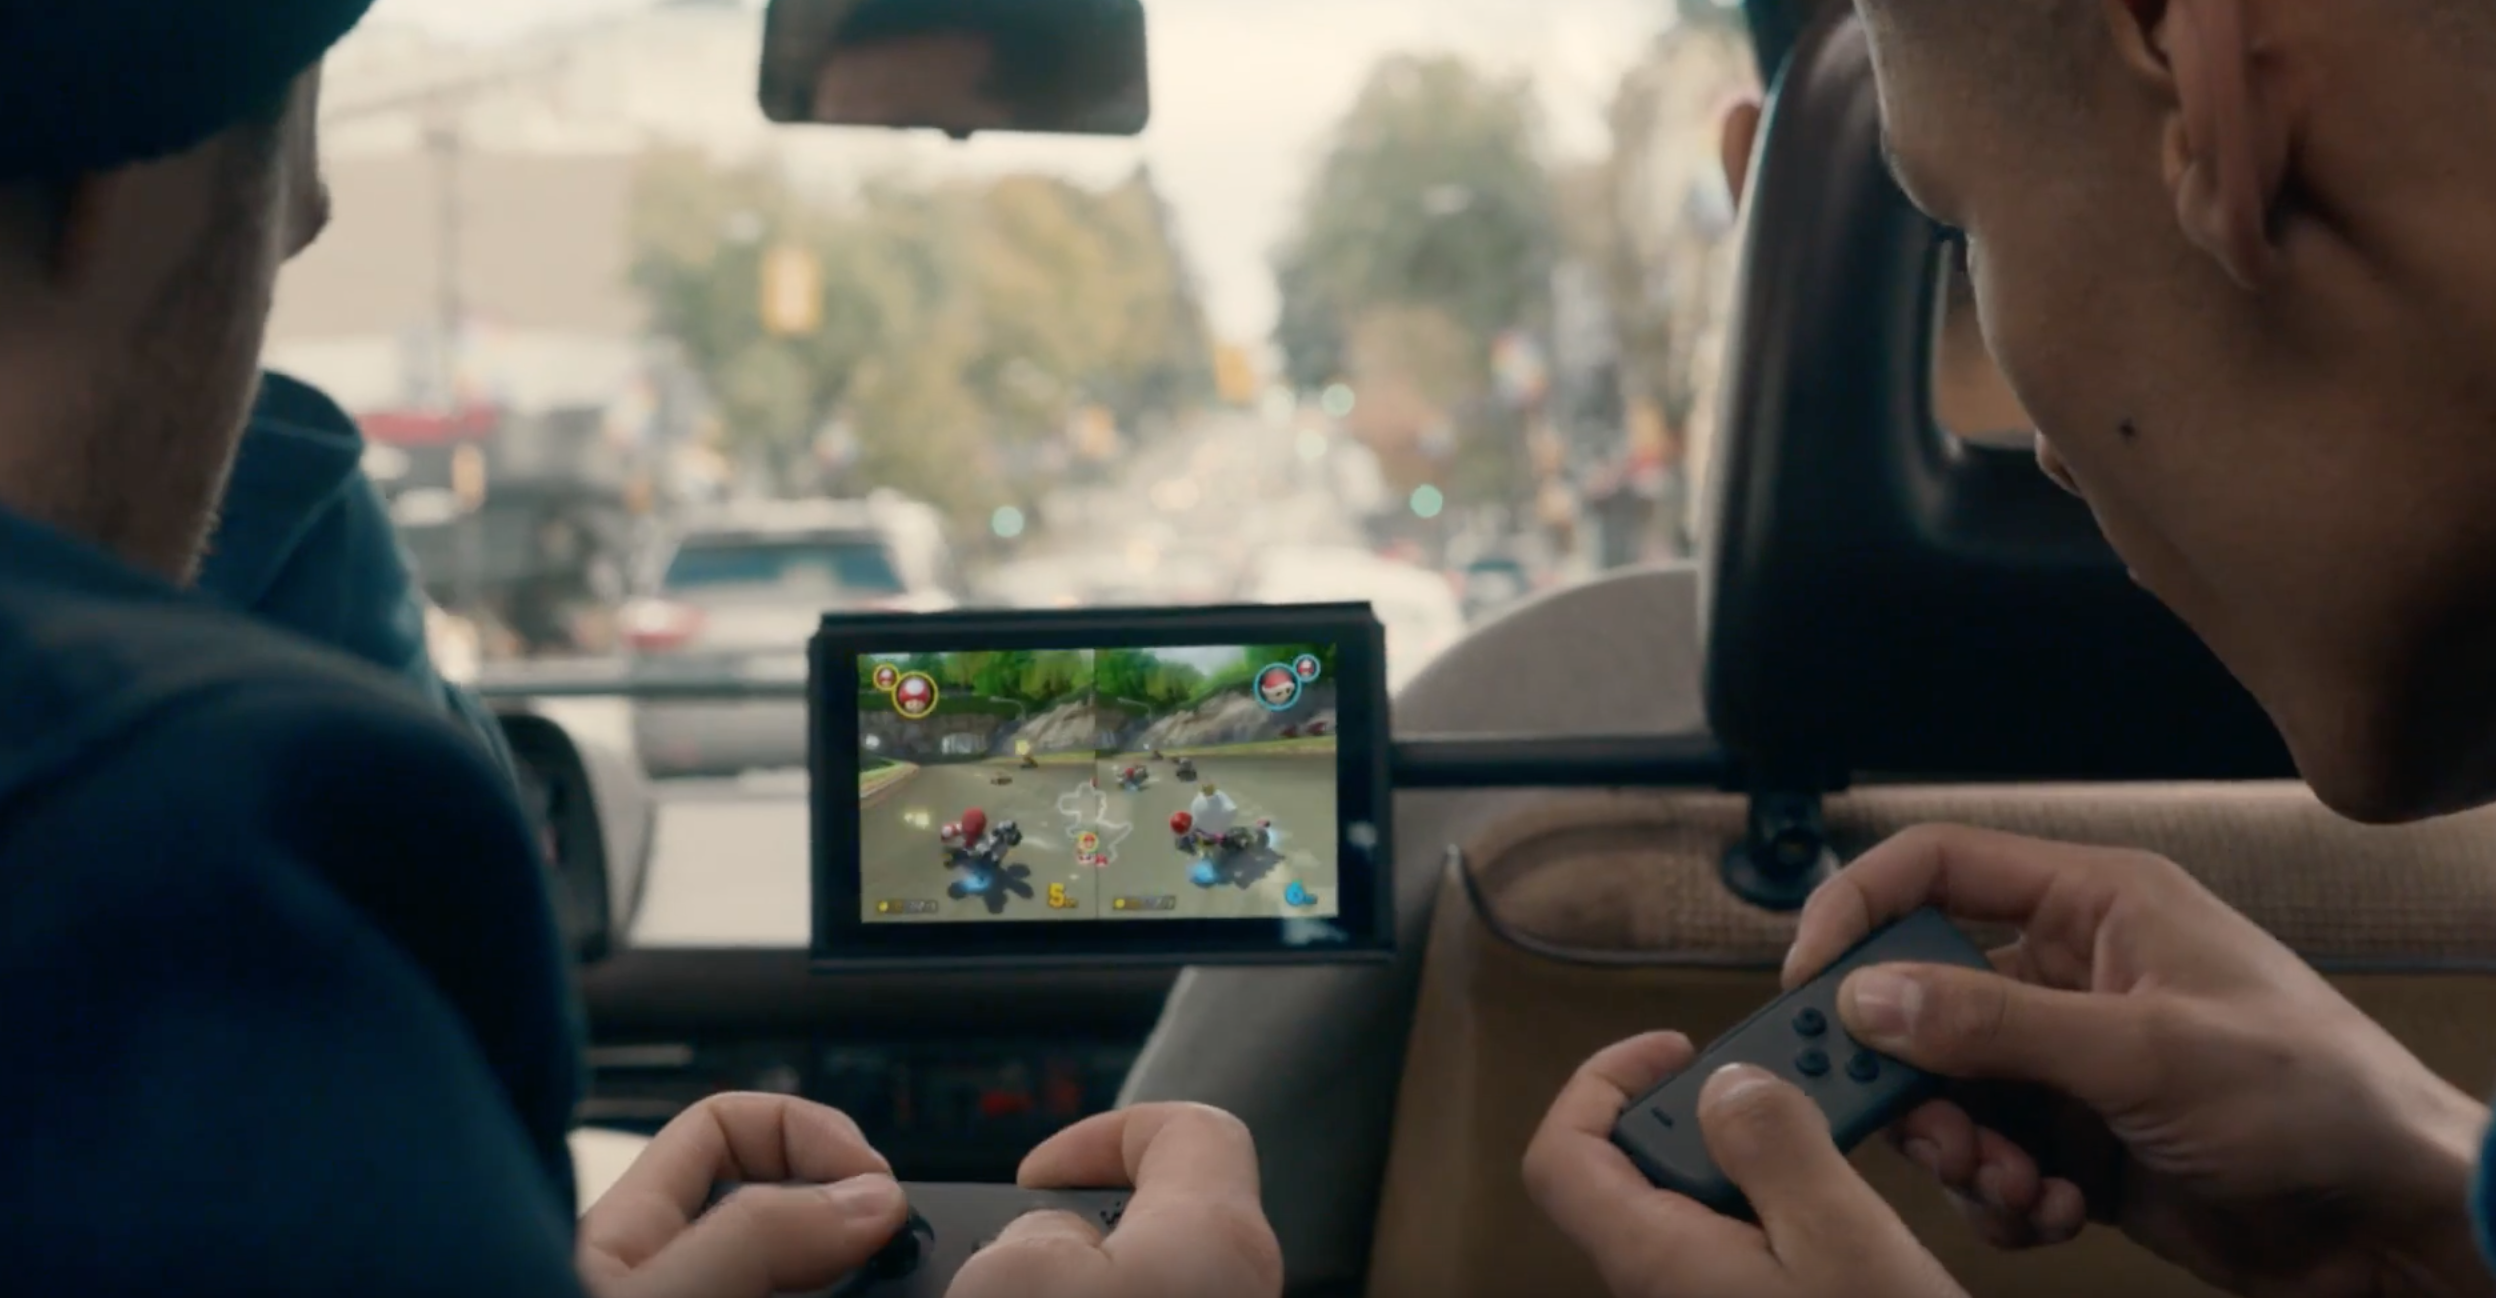 Some might feel the Switch's gimmick detracts more than attracts. Product positioning will be key.